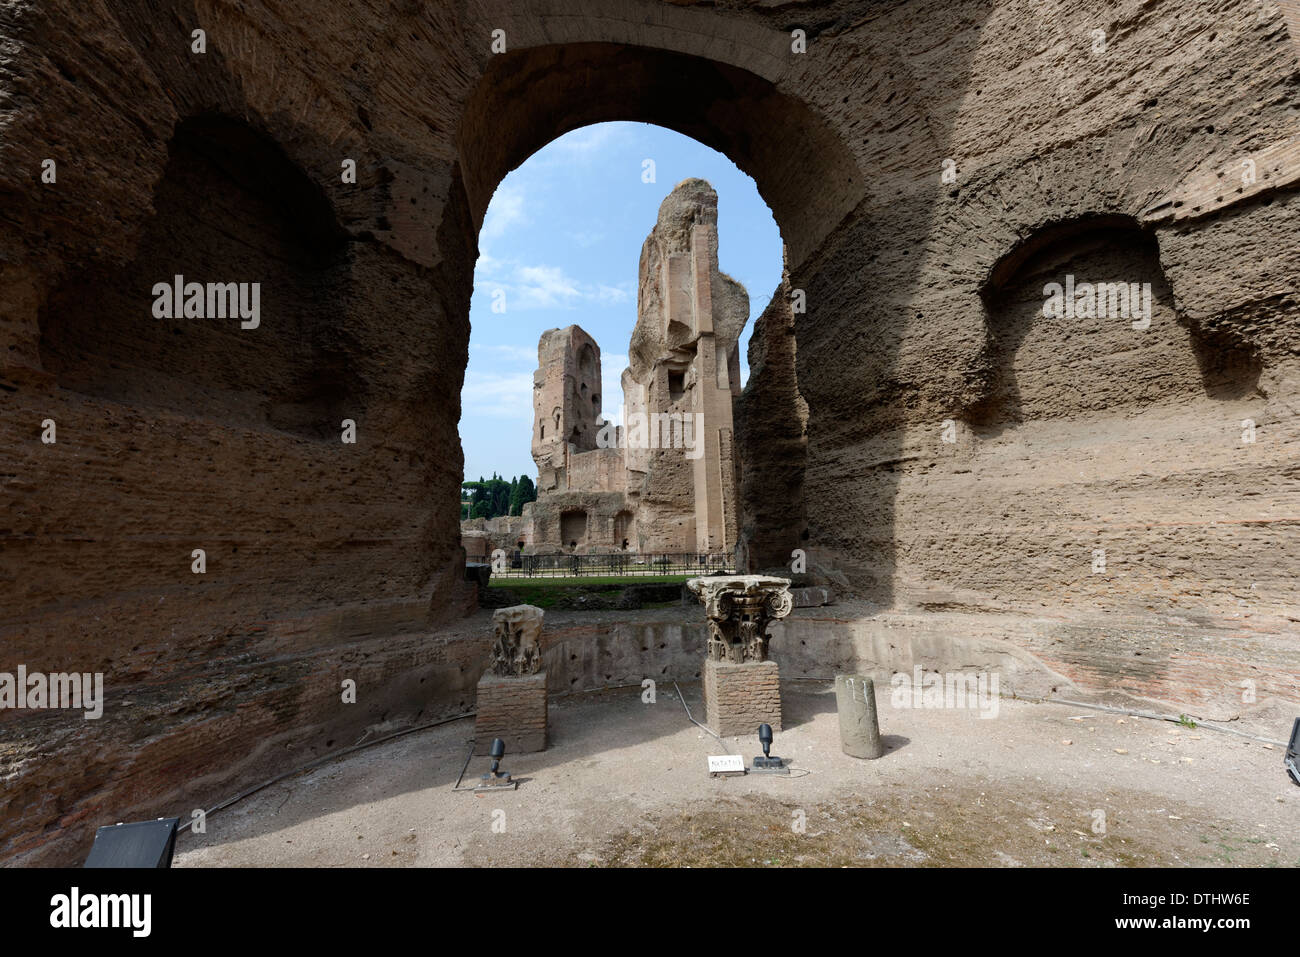 View ruin buildings from within Natatorium or swimming pool at north end Baths Caracalla Rome Italy Baths of - Stock Image